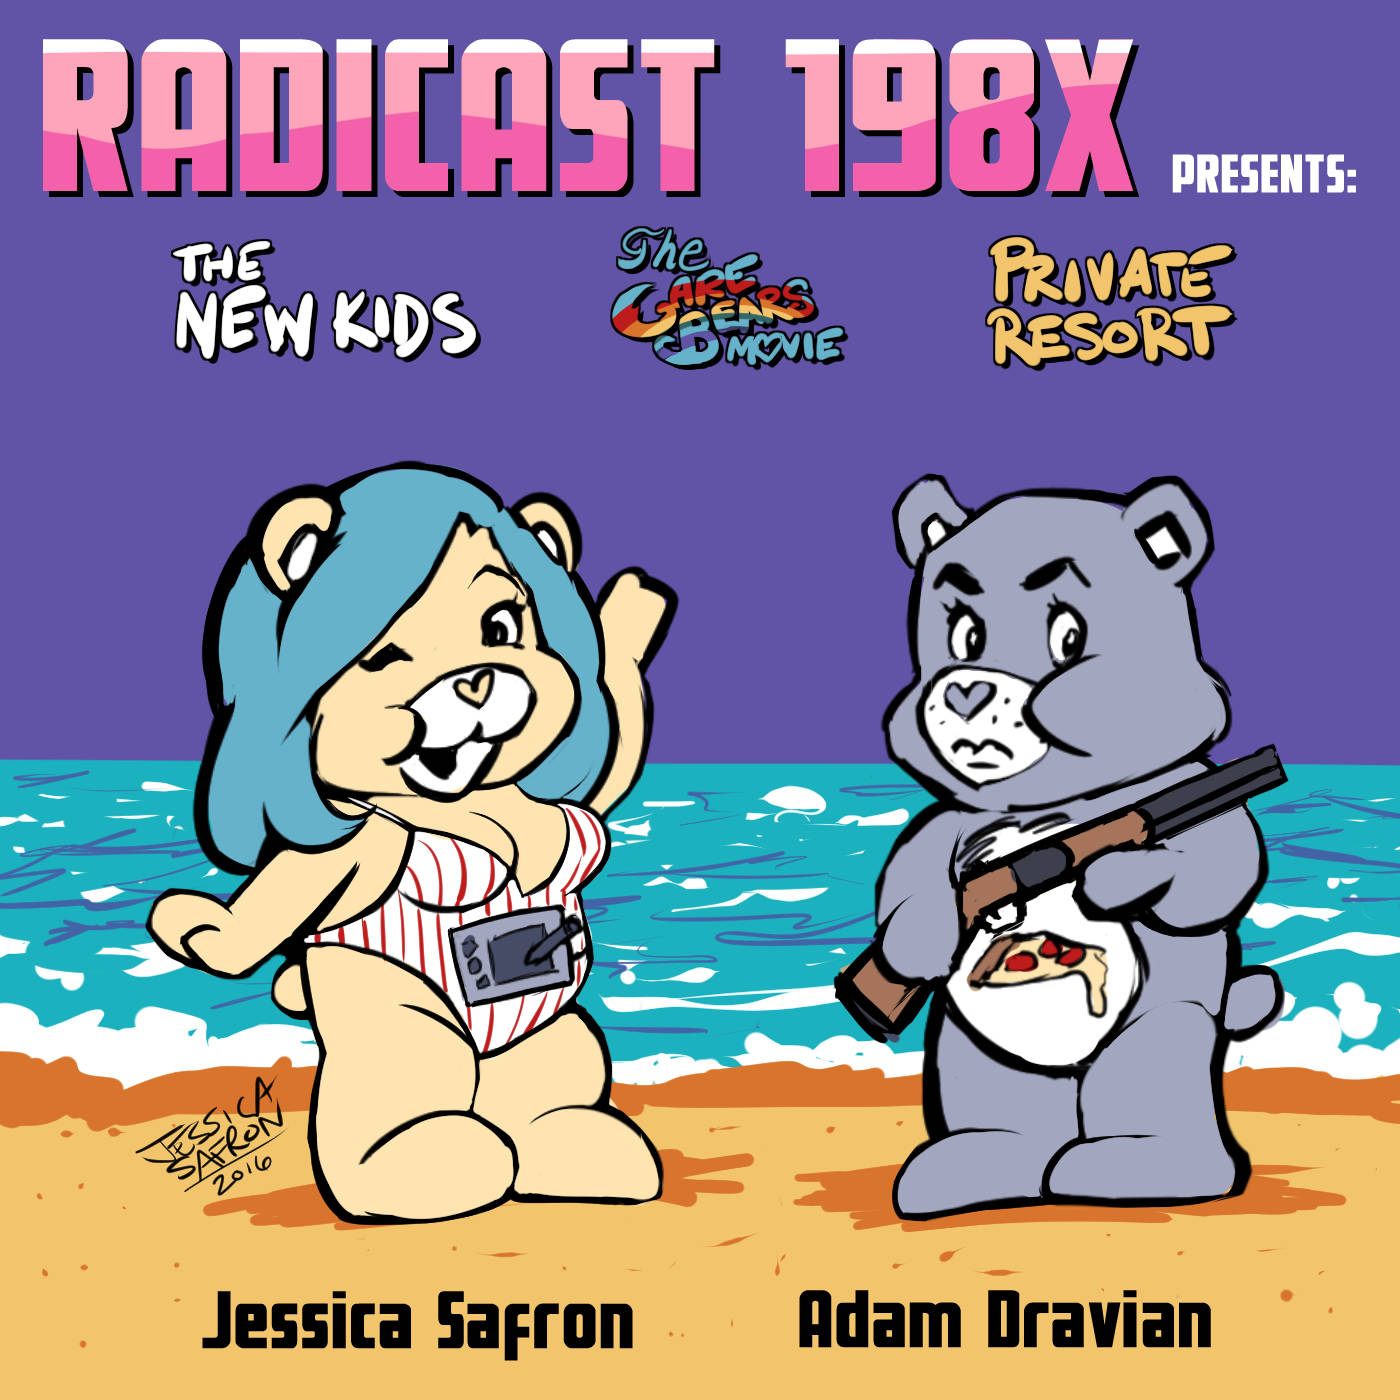 Episode 7 - The New Kids, Care Bears Movie, Private Resort